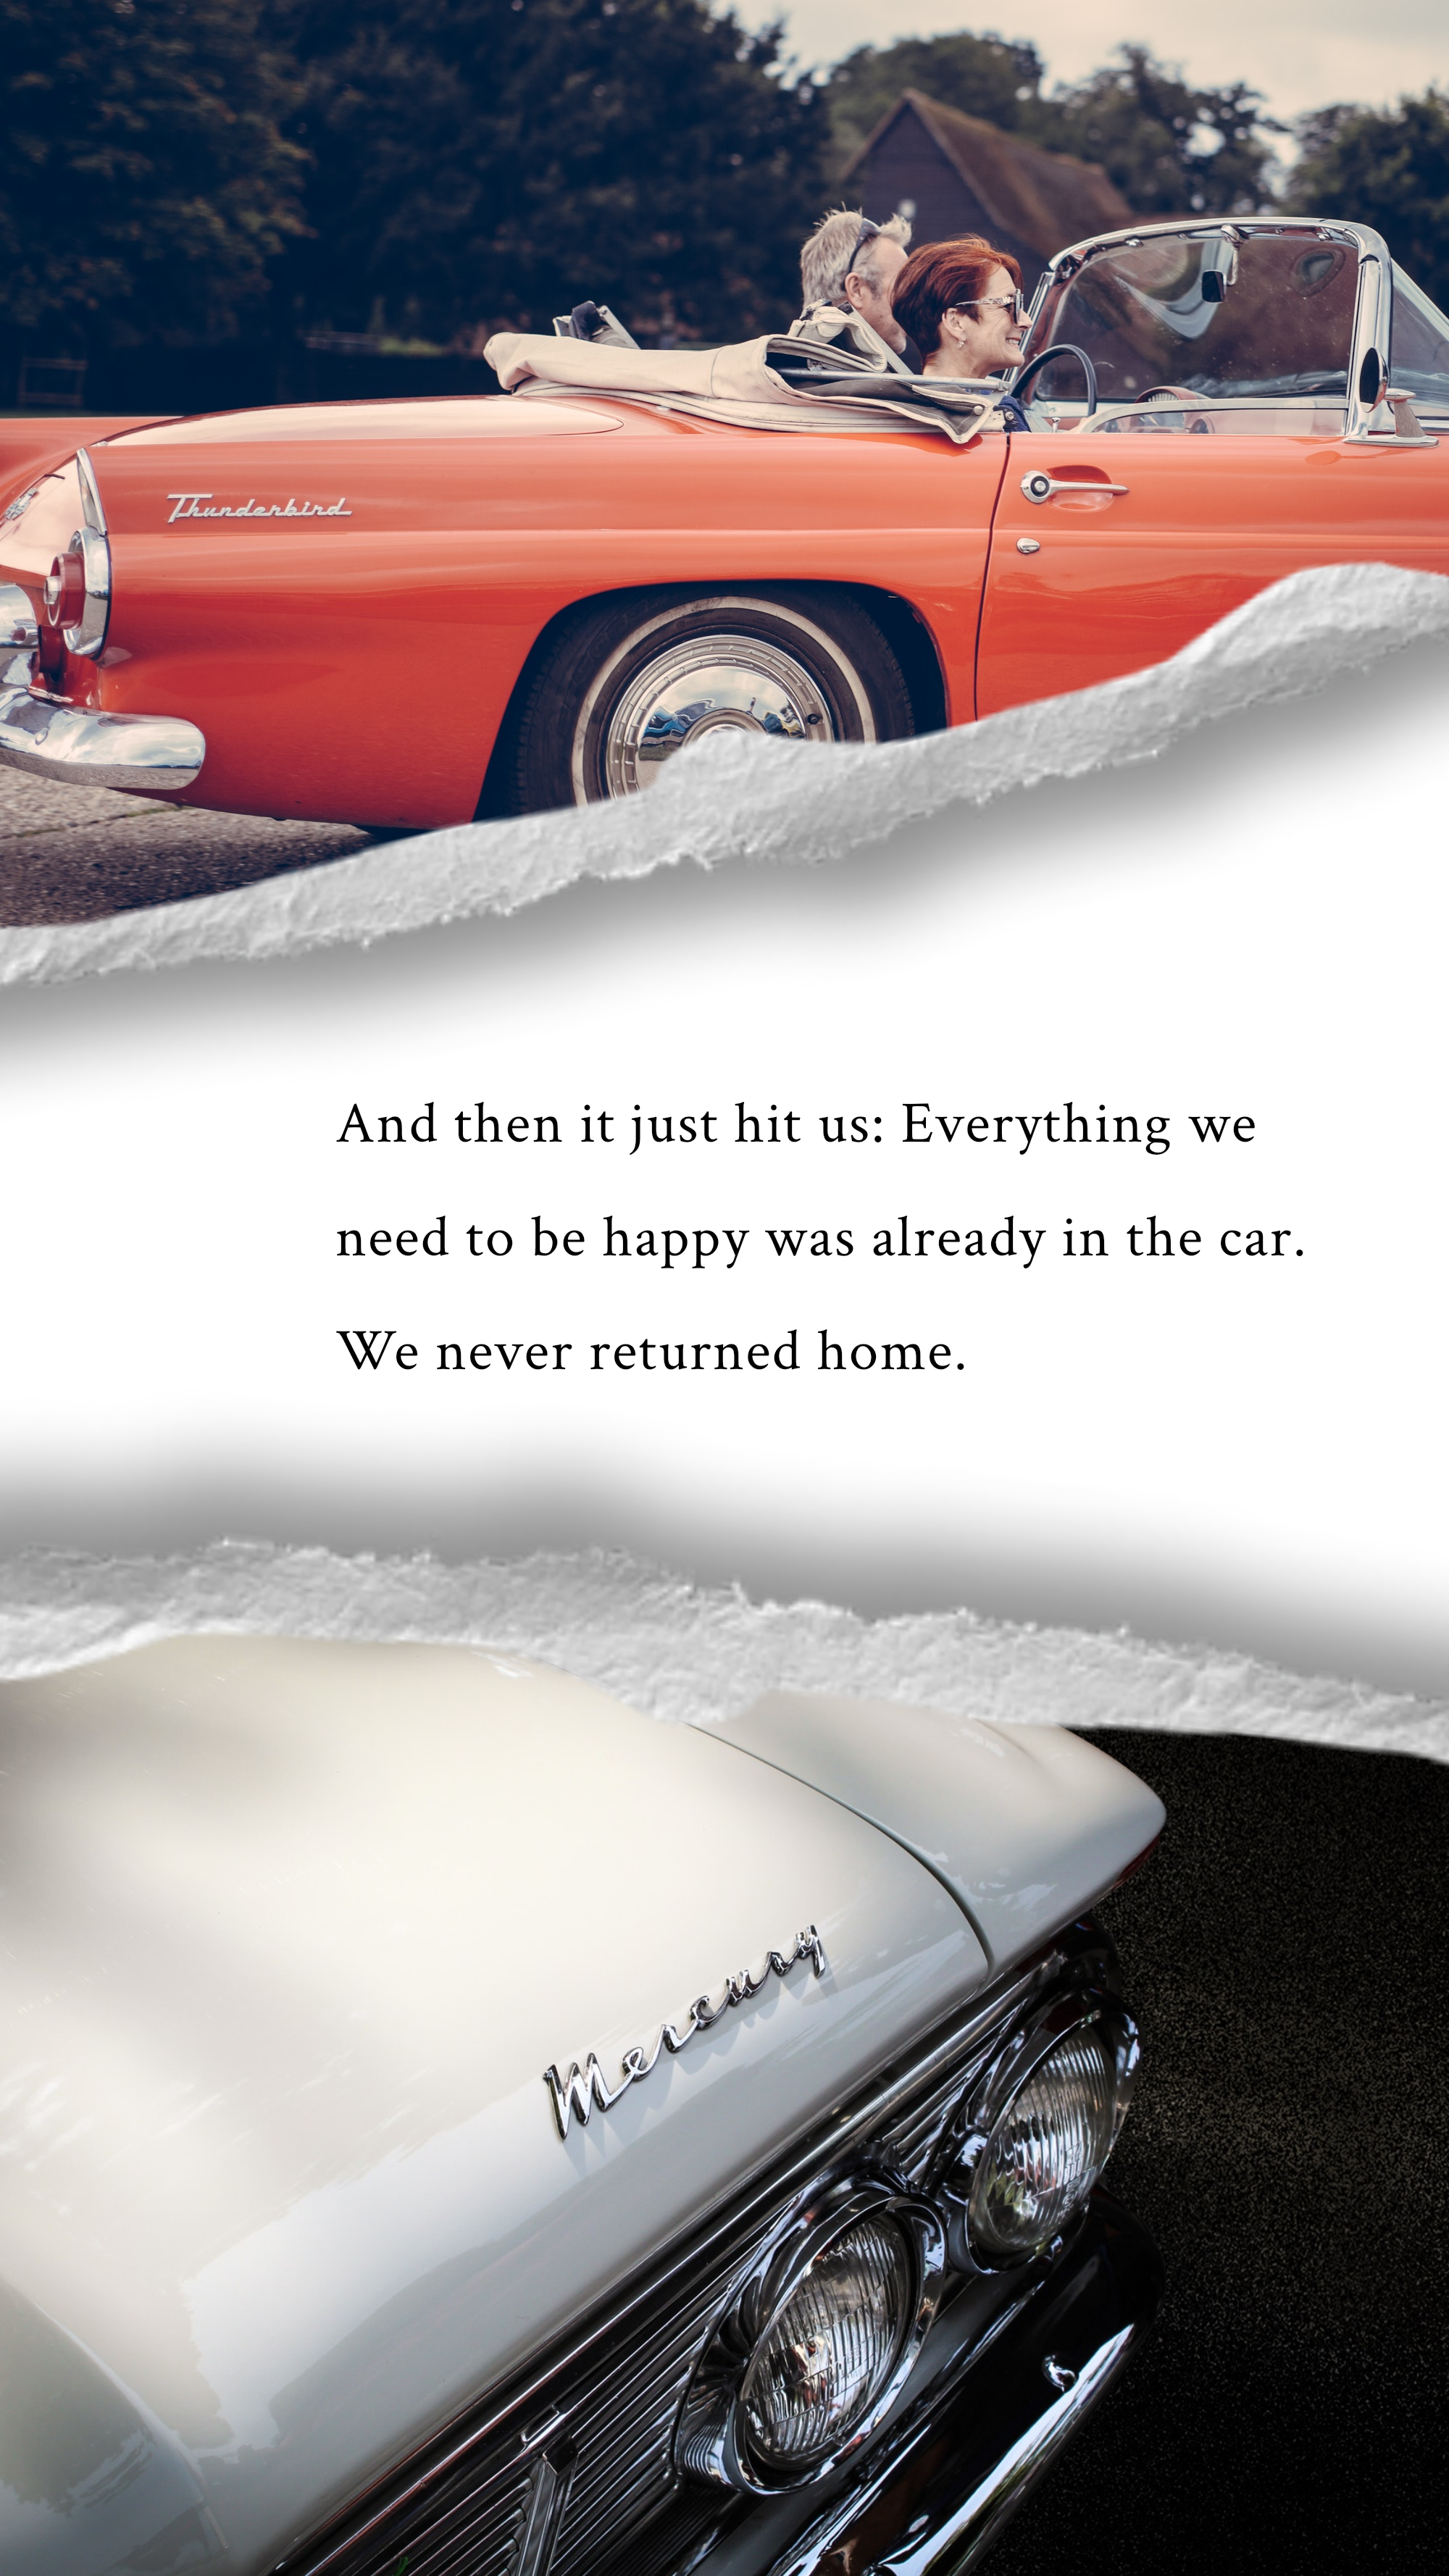 Paper (new) collection - And then it just hit us: Everything we need to be happy was already in the car. We never returned home. Instagram Story Template